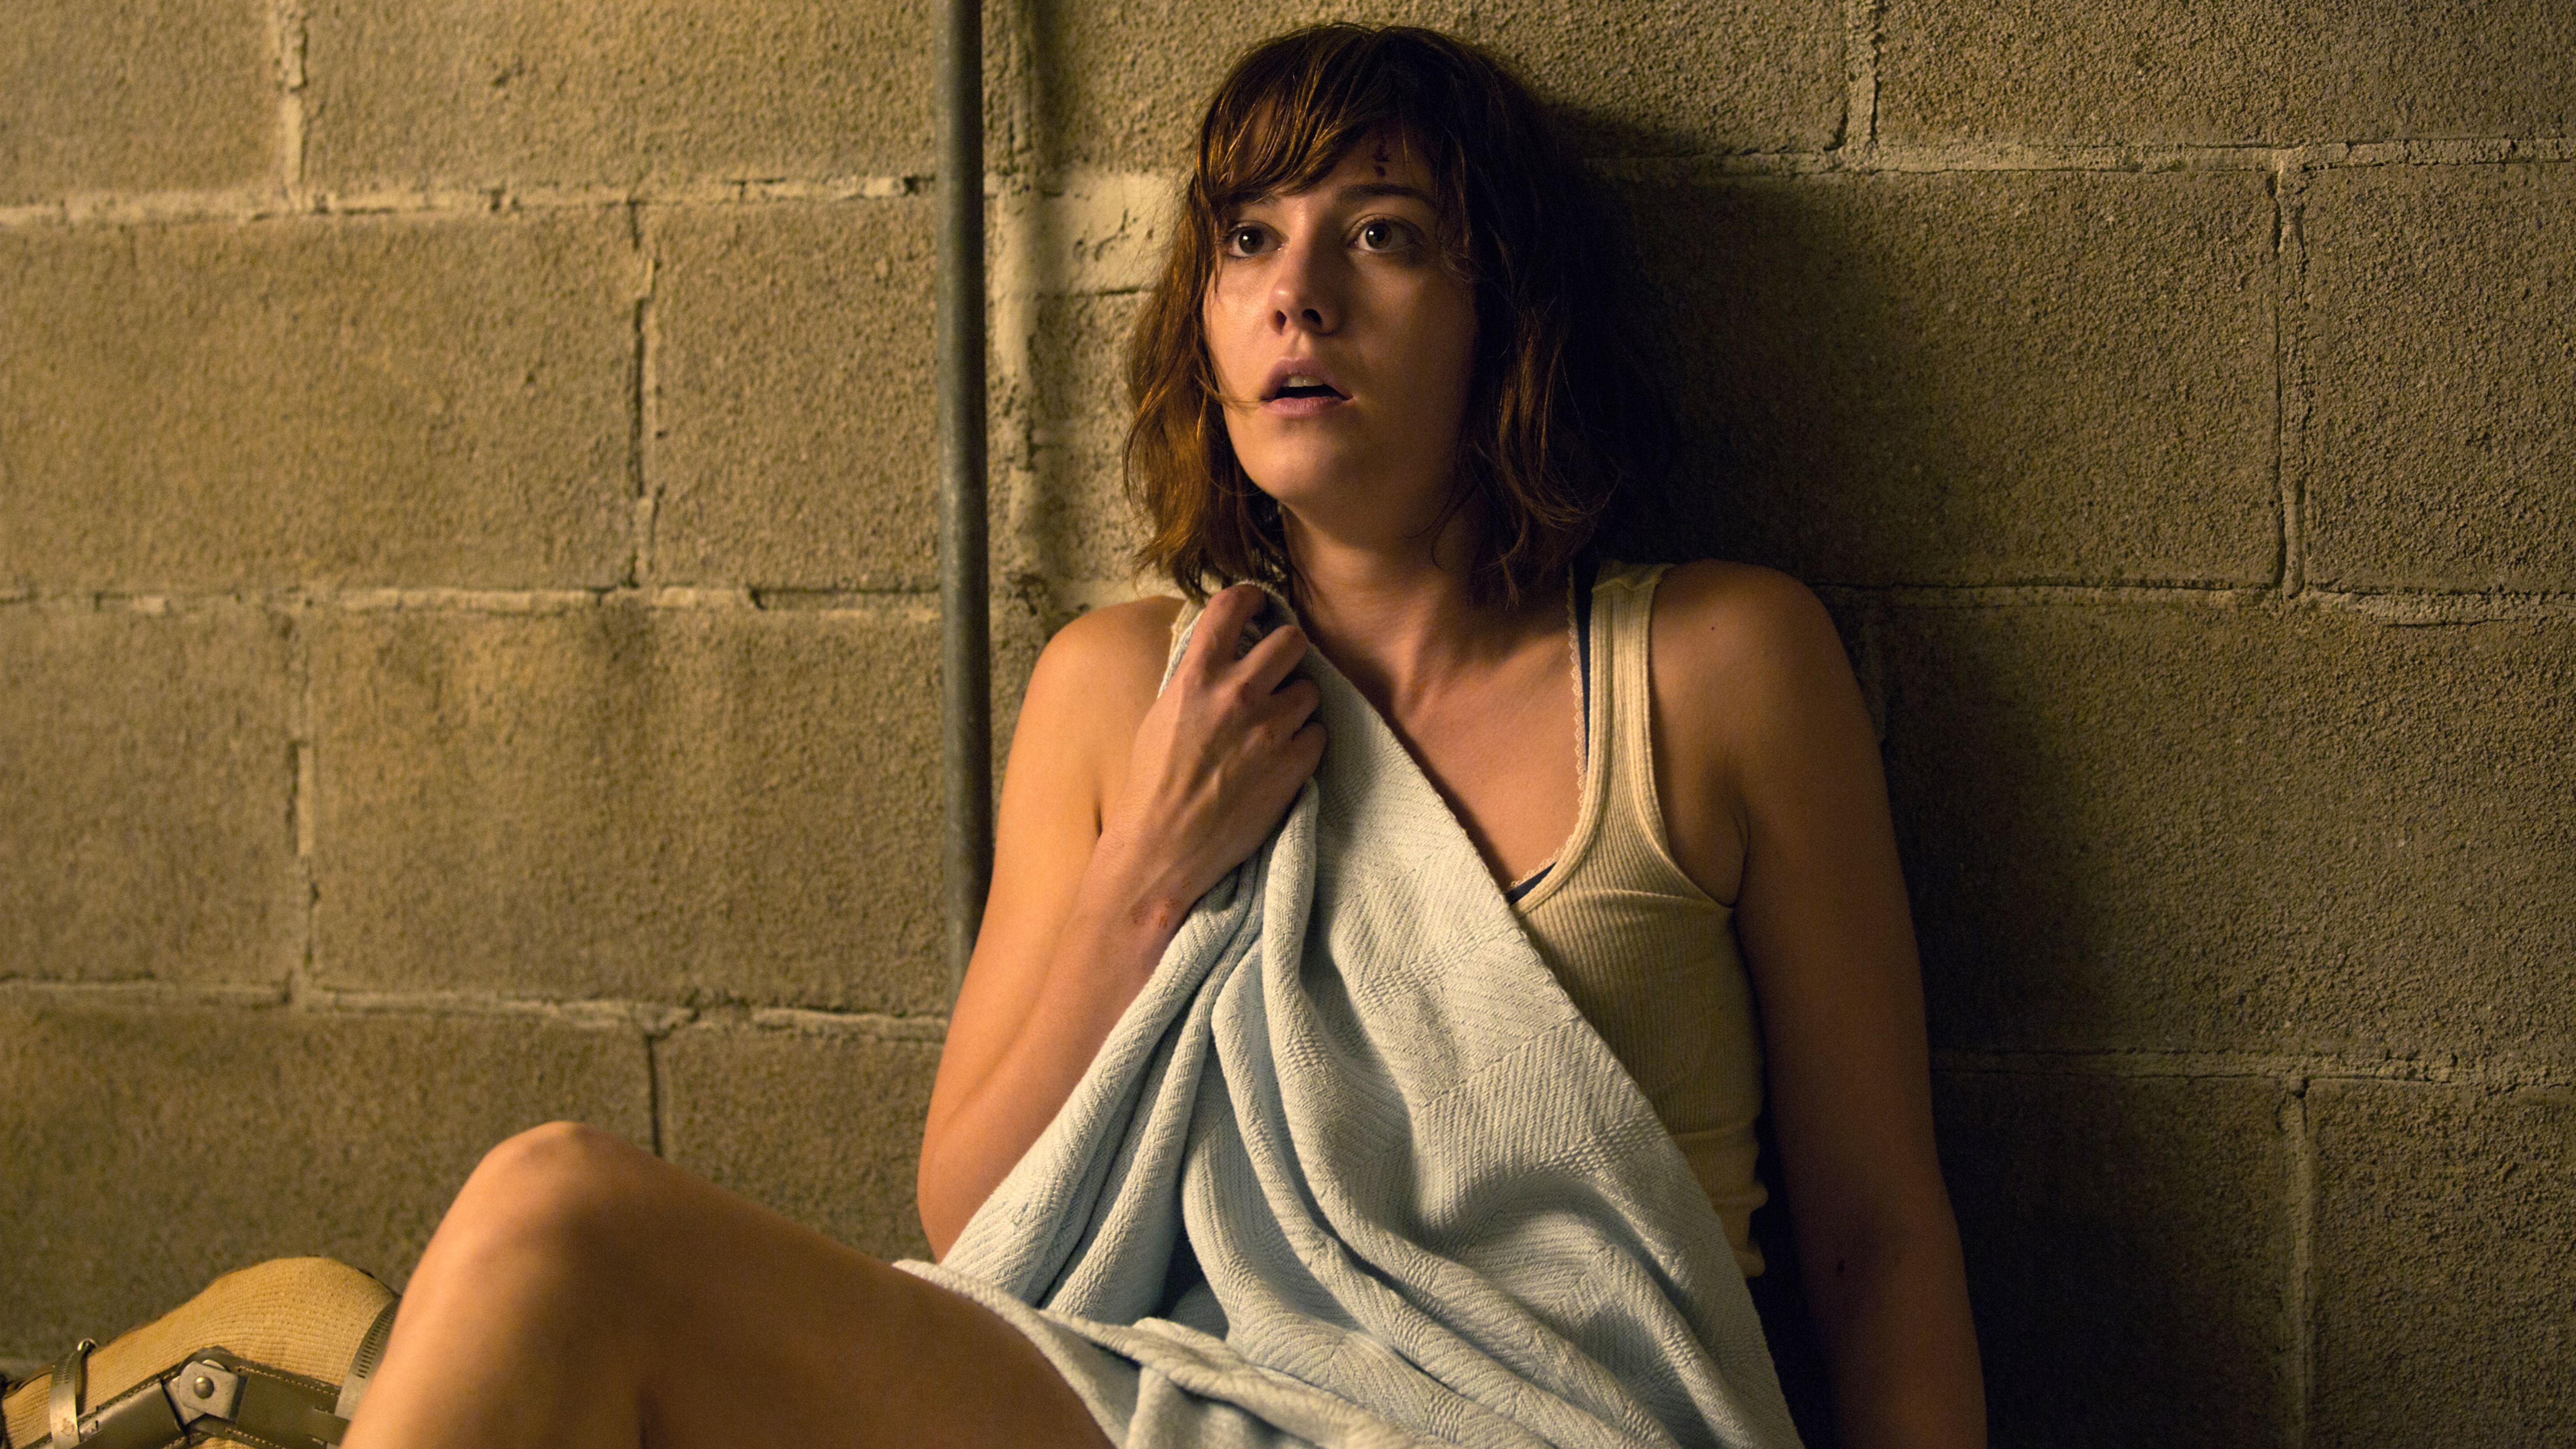 Download free HD Mary Elizabeth Winstead 10 Cloverfield Lane HD Wallpaper, image